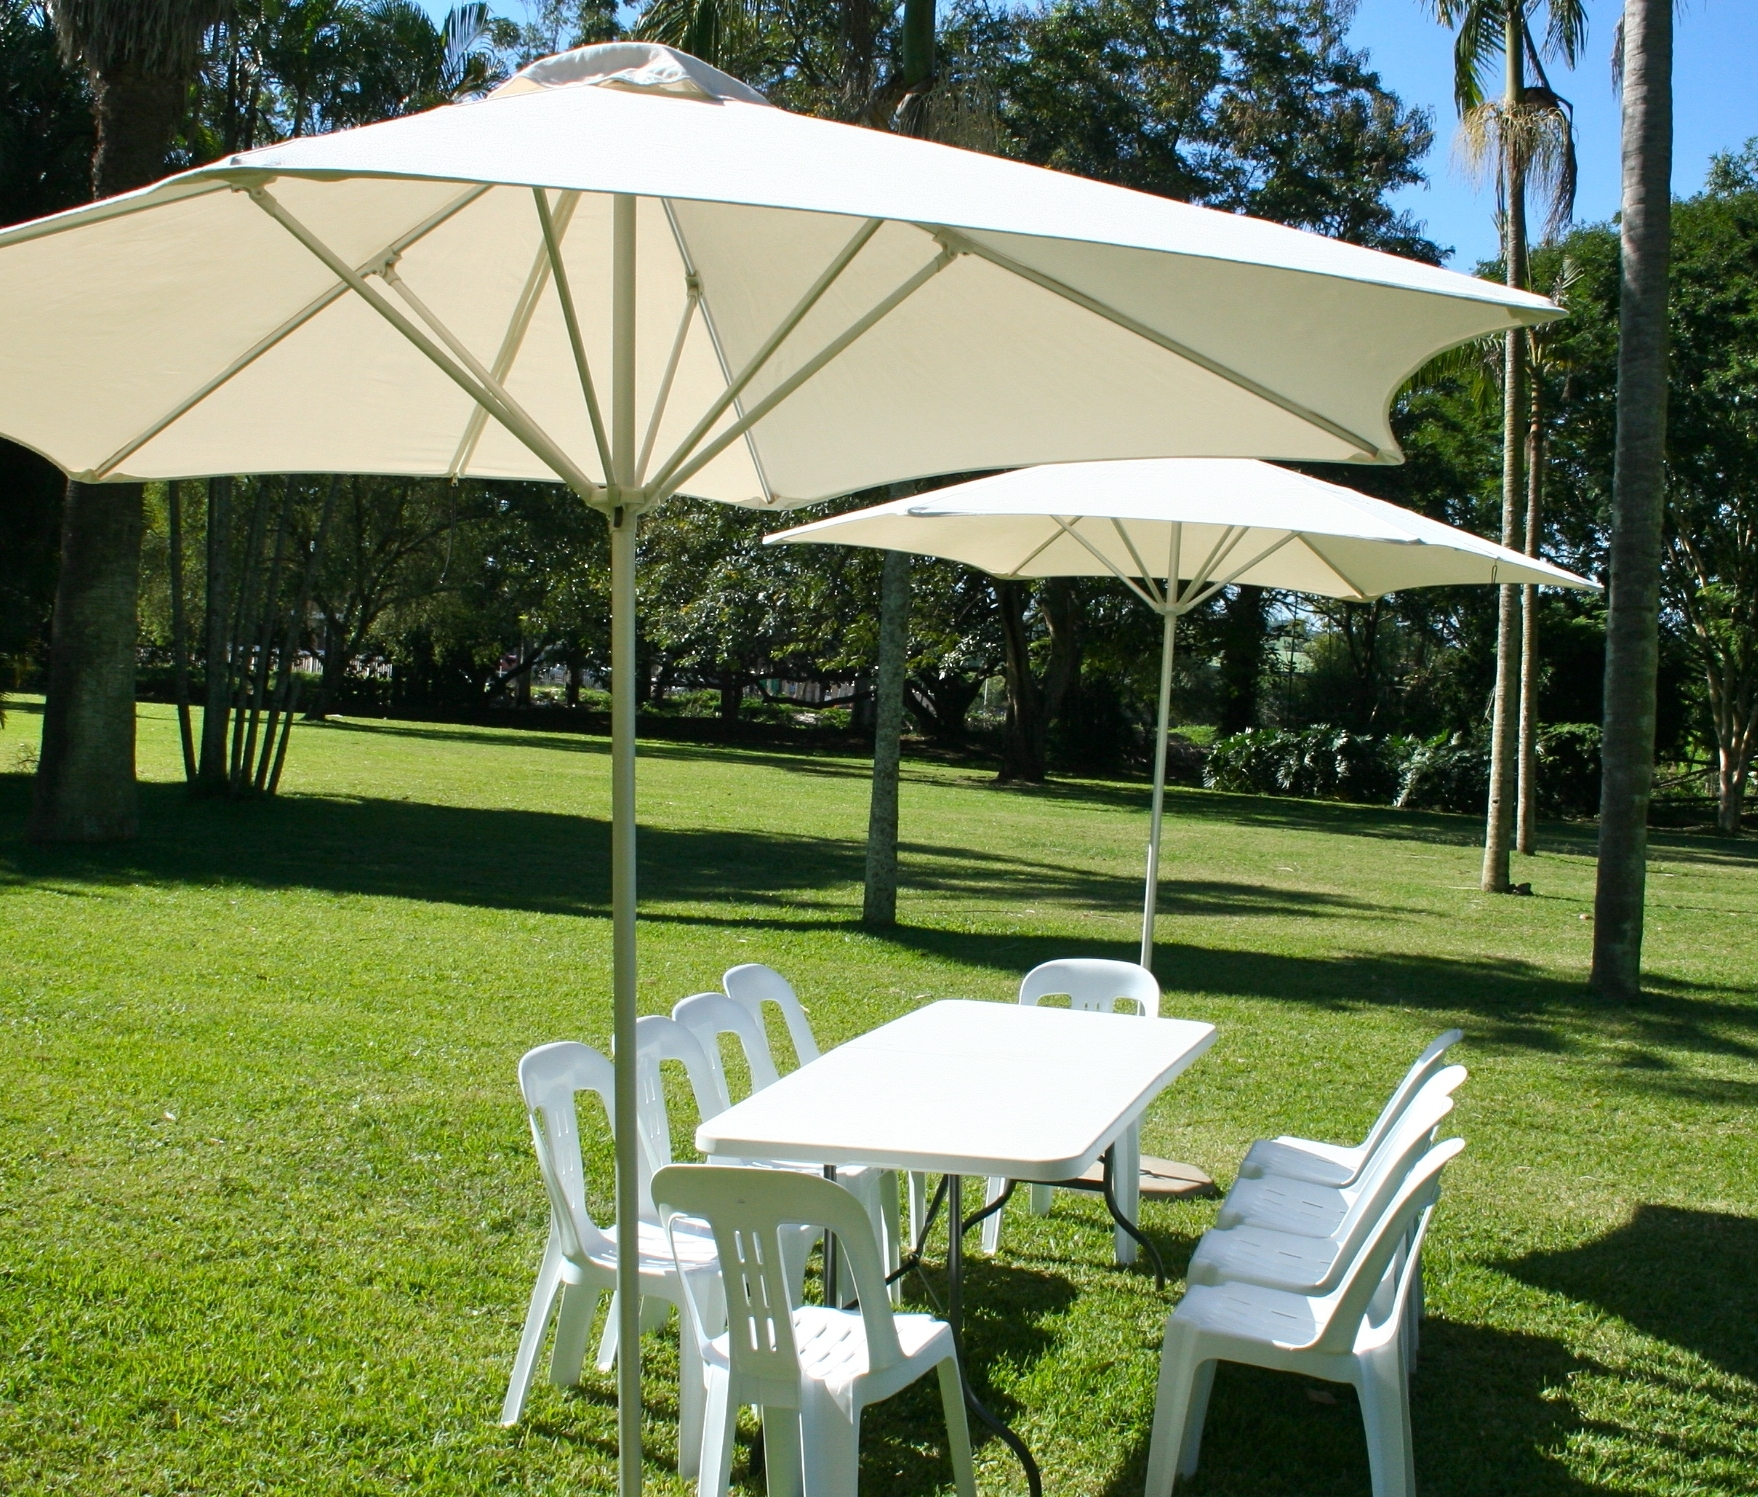 Large Patio Umbrellas For Most Current Outdoor Patio Umbrella Rental Umbrella Hire (View 4 of 20)